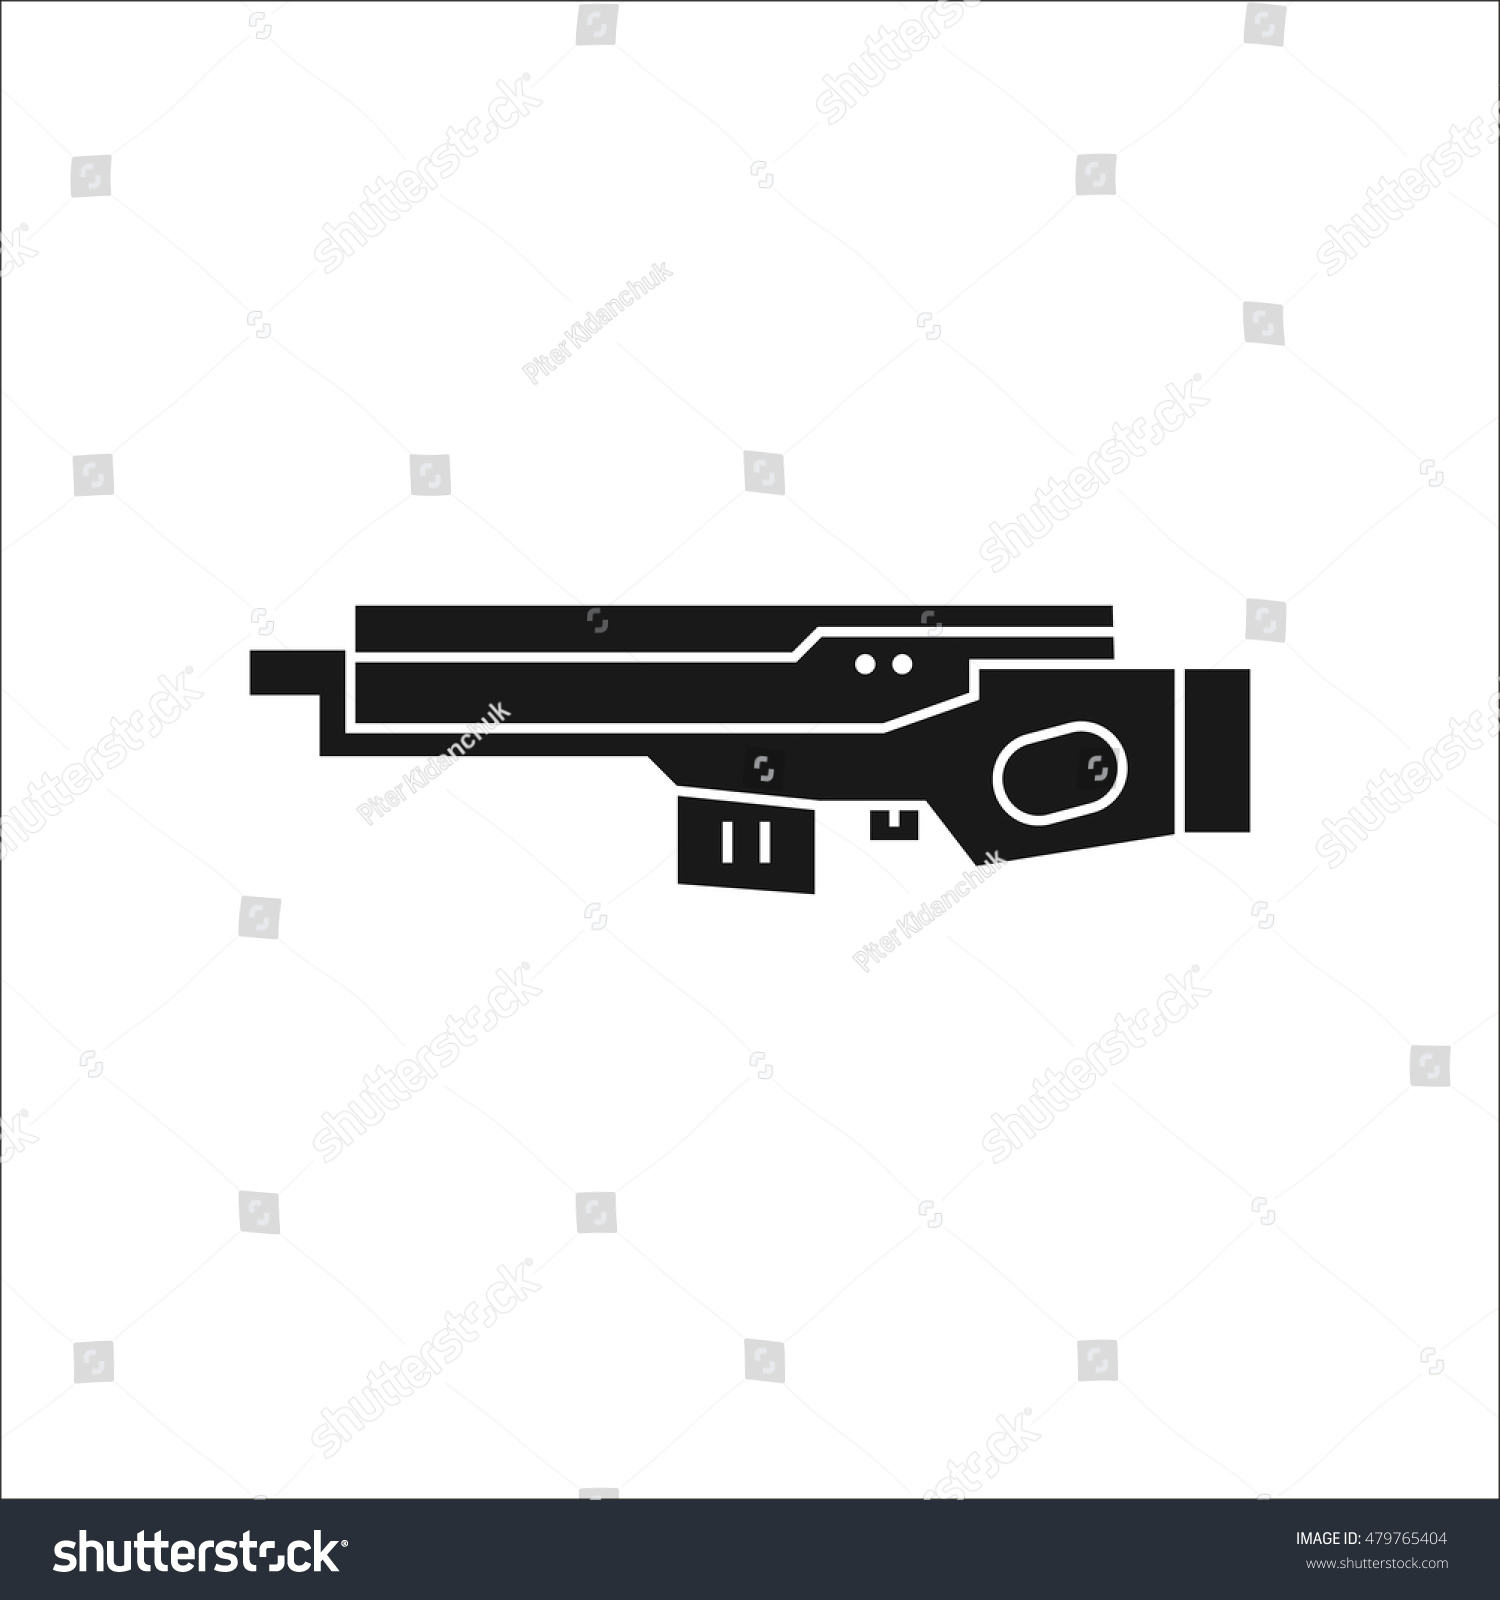 Futuristic large laser gun rifle symbol stock vector 479765404 futuristic large laser gun rifle symbol sign silhouette icon on background biocorpaavc Images